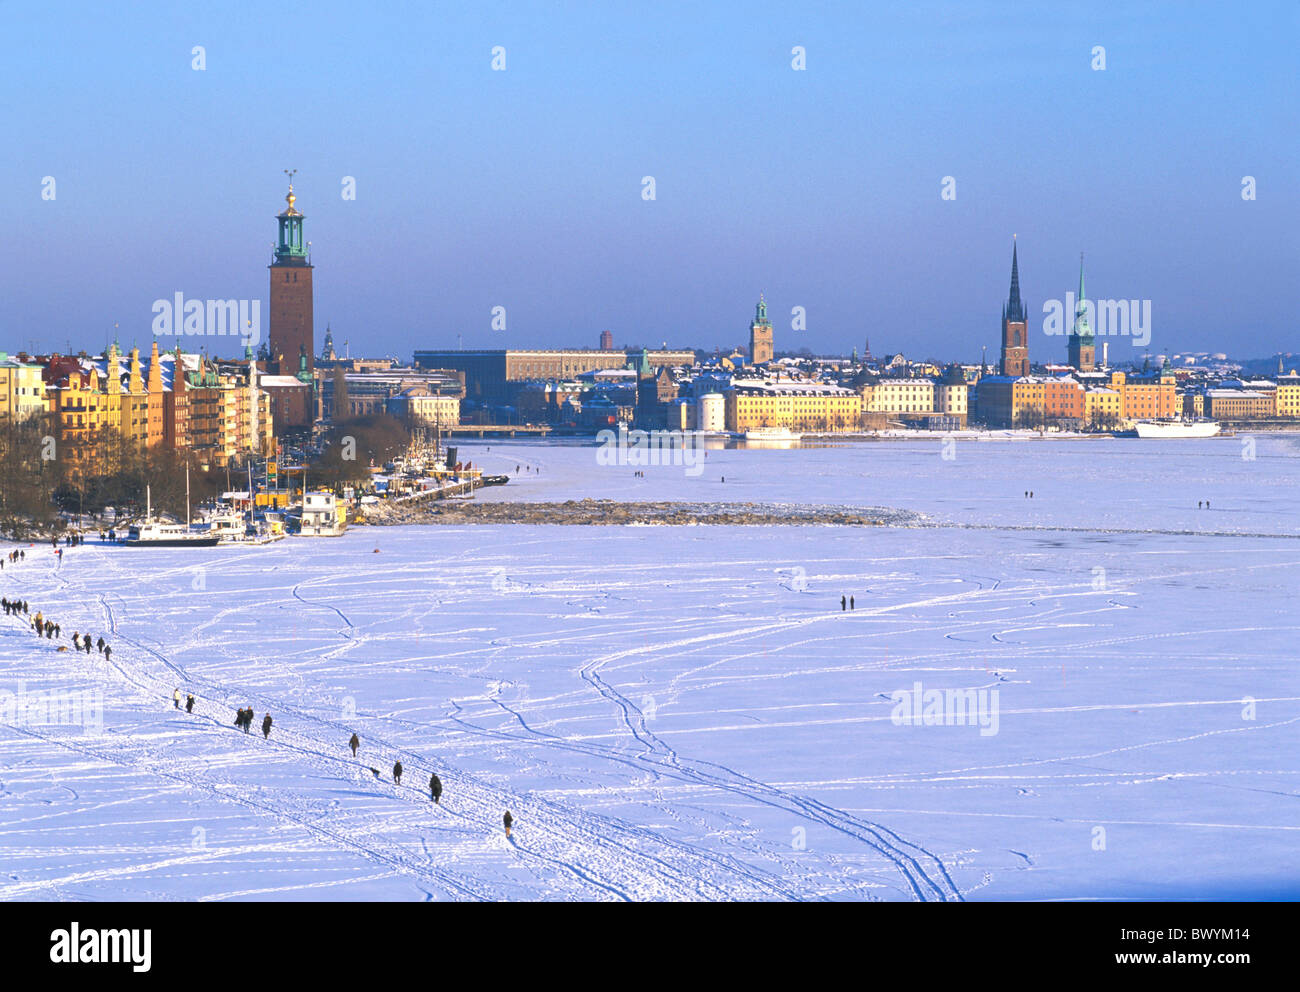 ice pedestrian froze coast people painting ares lake sea person snow Sweden Europe tracks traces town - Stock Image